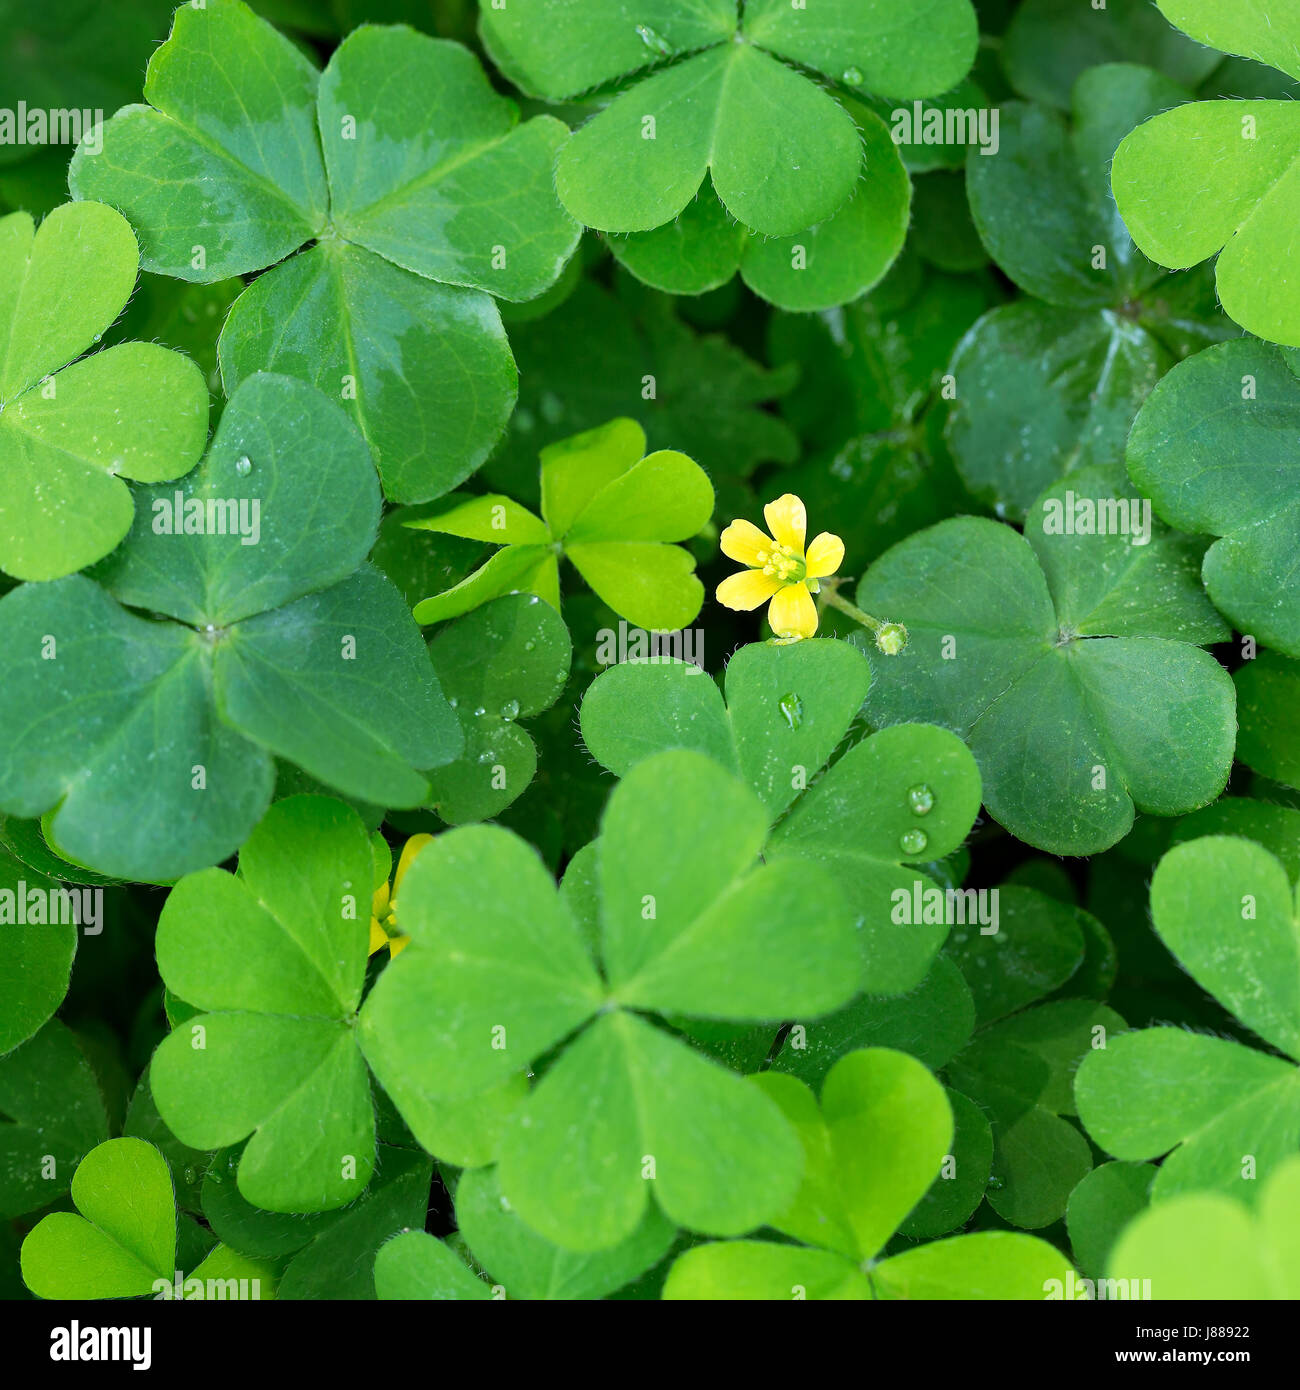 Clover and little yellow flower stock photo 142782922 alamy clover and little yellow flower mightylinksfo Choice Image